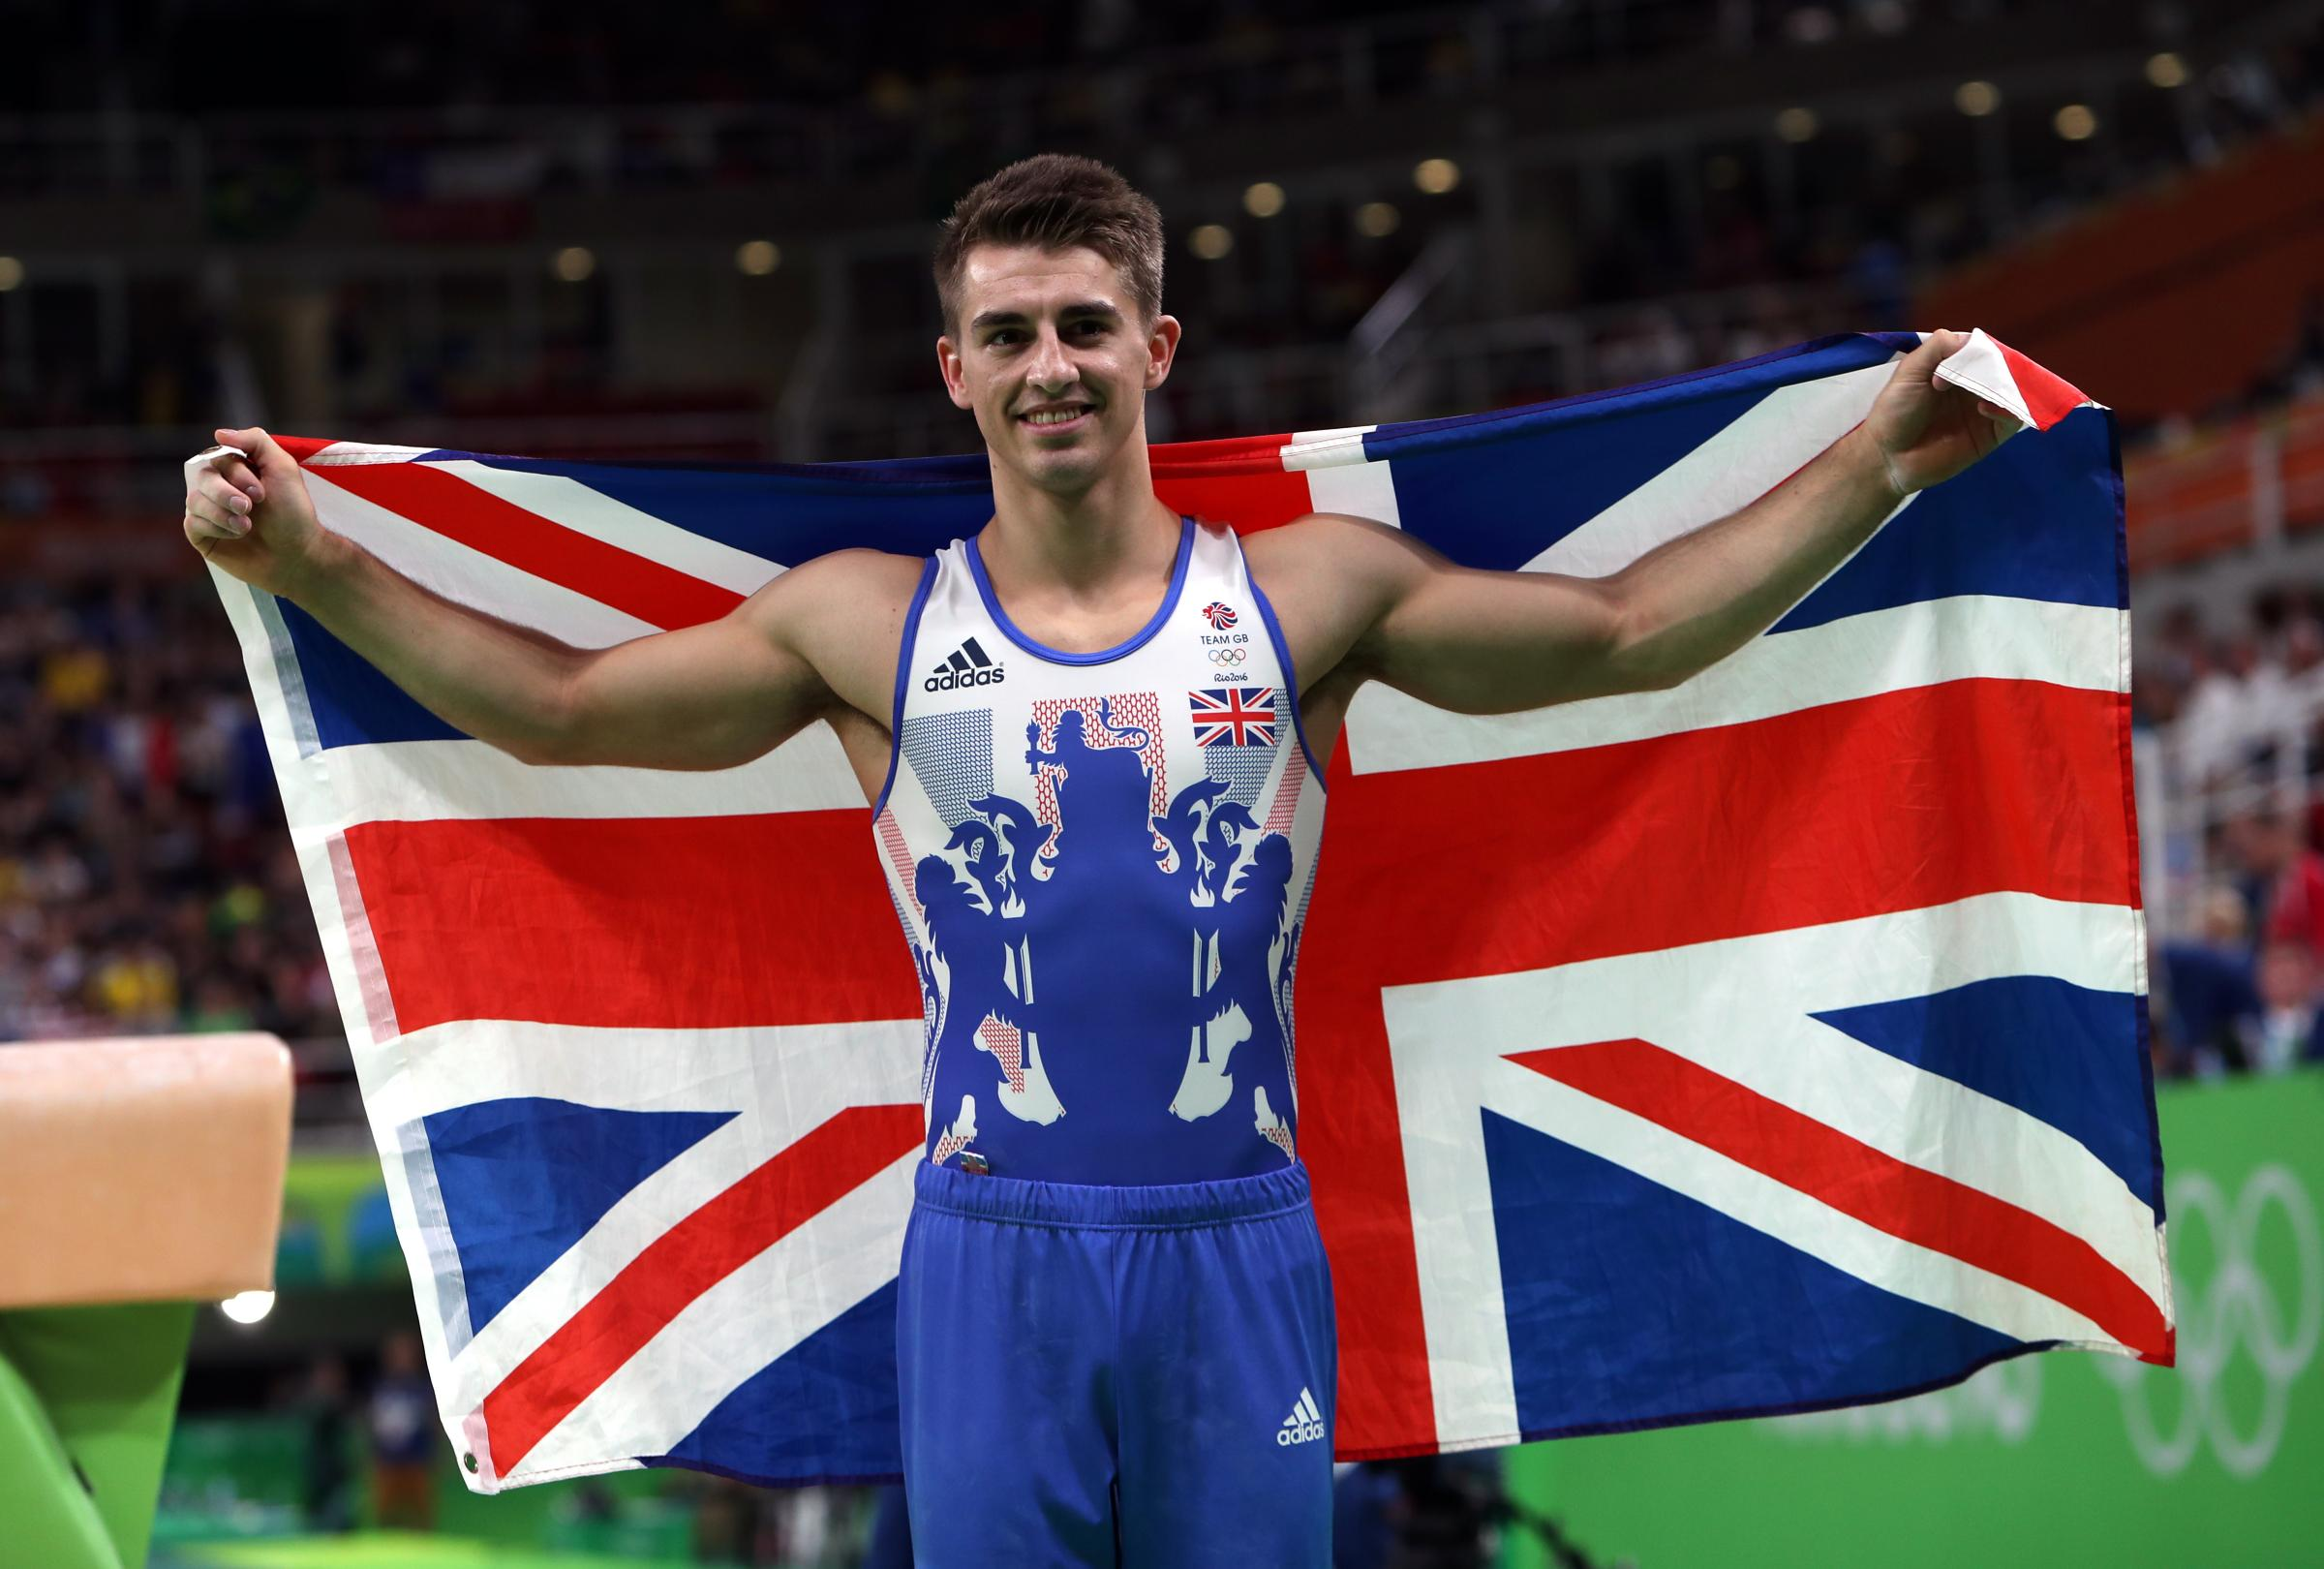 Hungry for more success - Max Whitlock